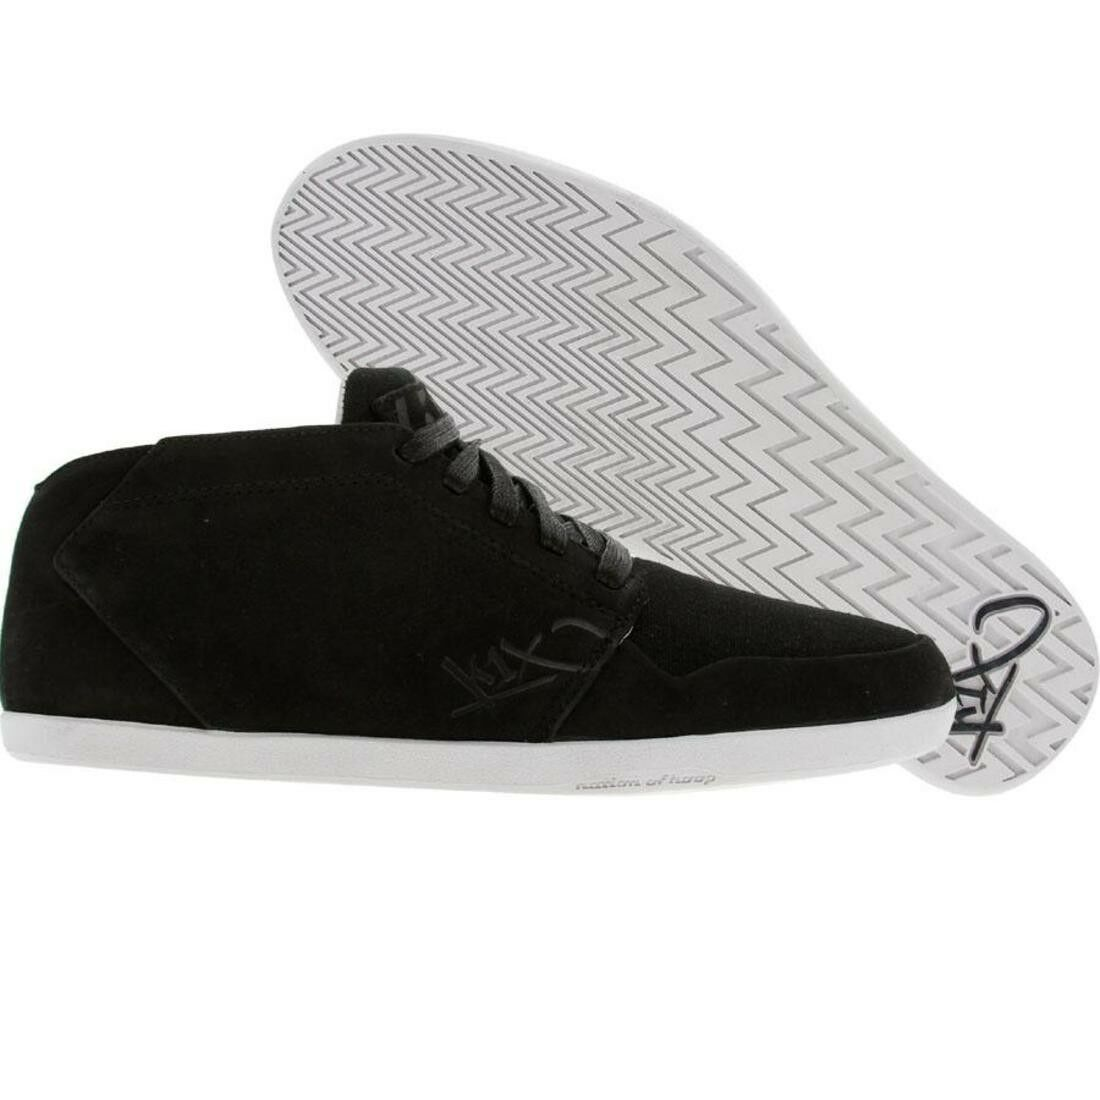 $99.99 Leather K1X KIX Shoes Ip Leather $99.99 black white 0057-0102 689455